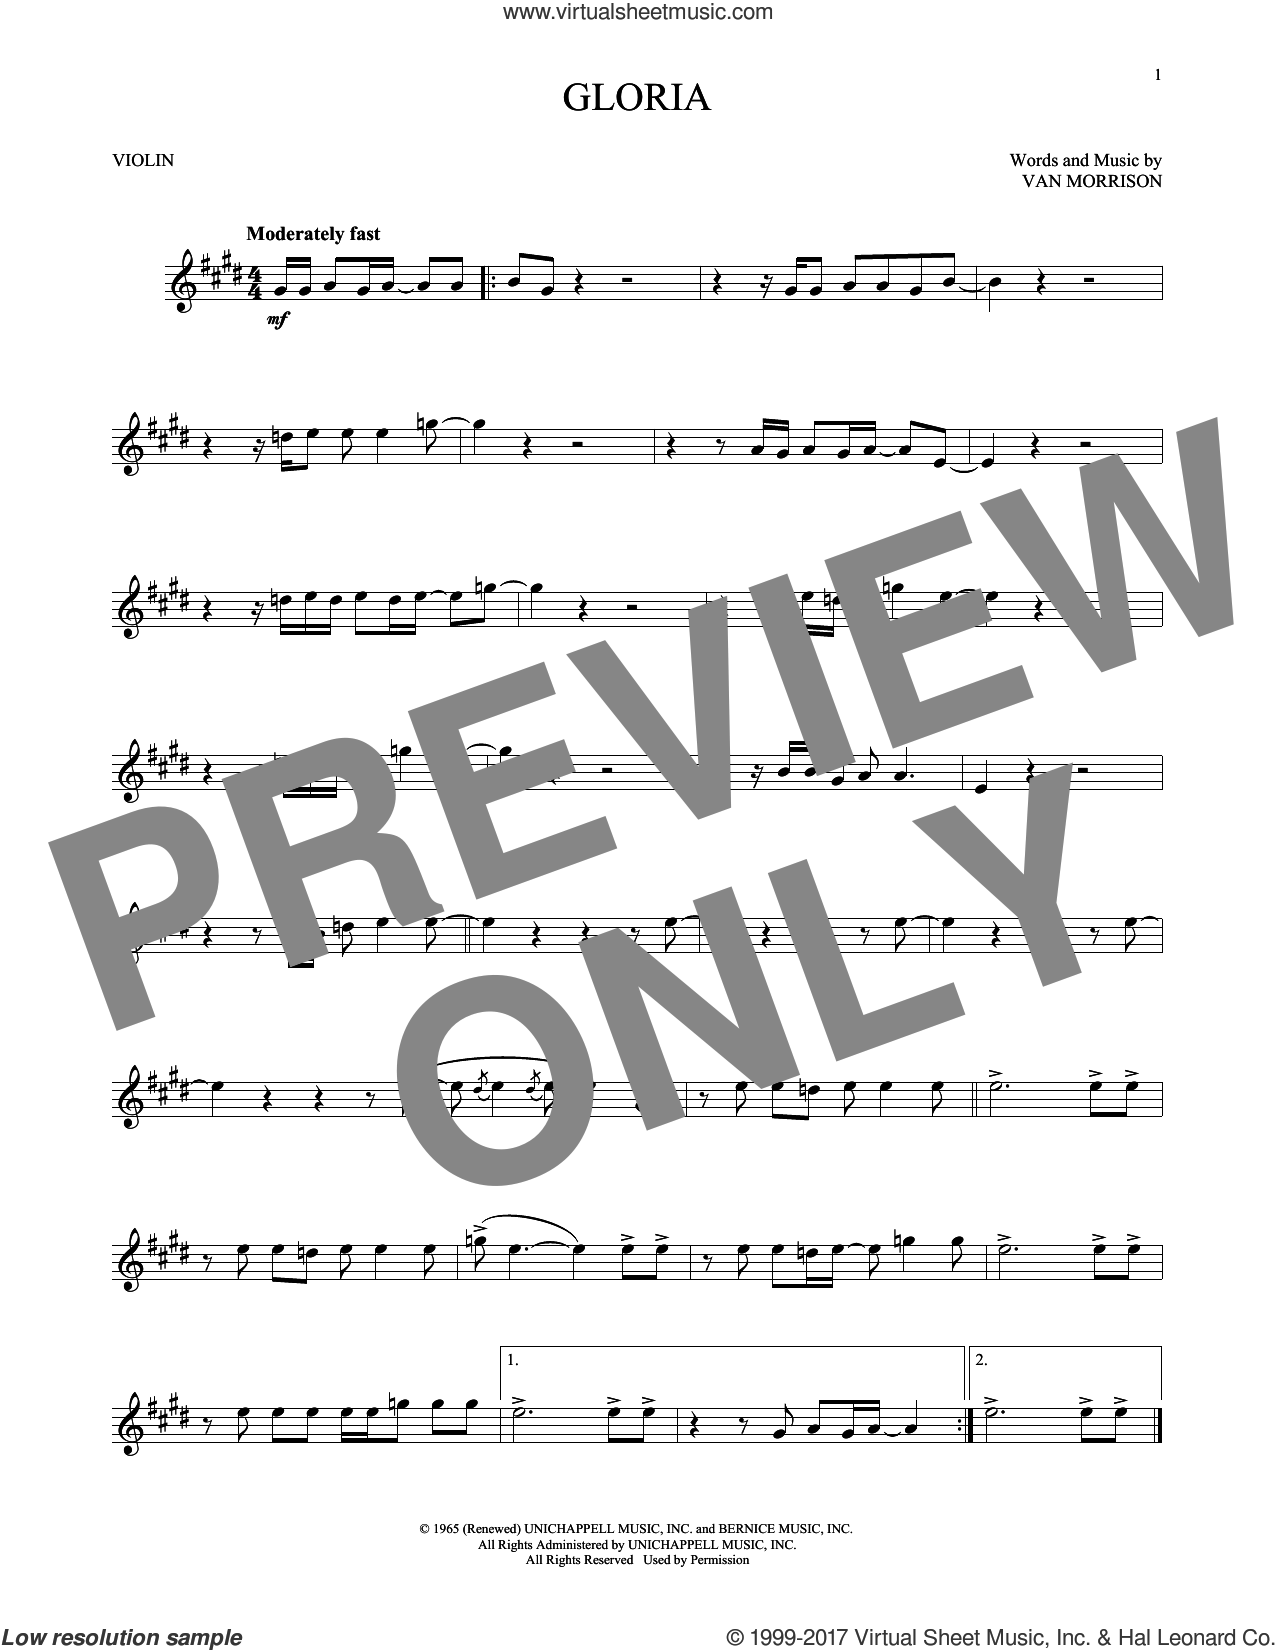 Gloria sheet music for violin solo by Van Morrison, intermediate skill level